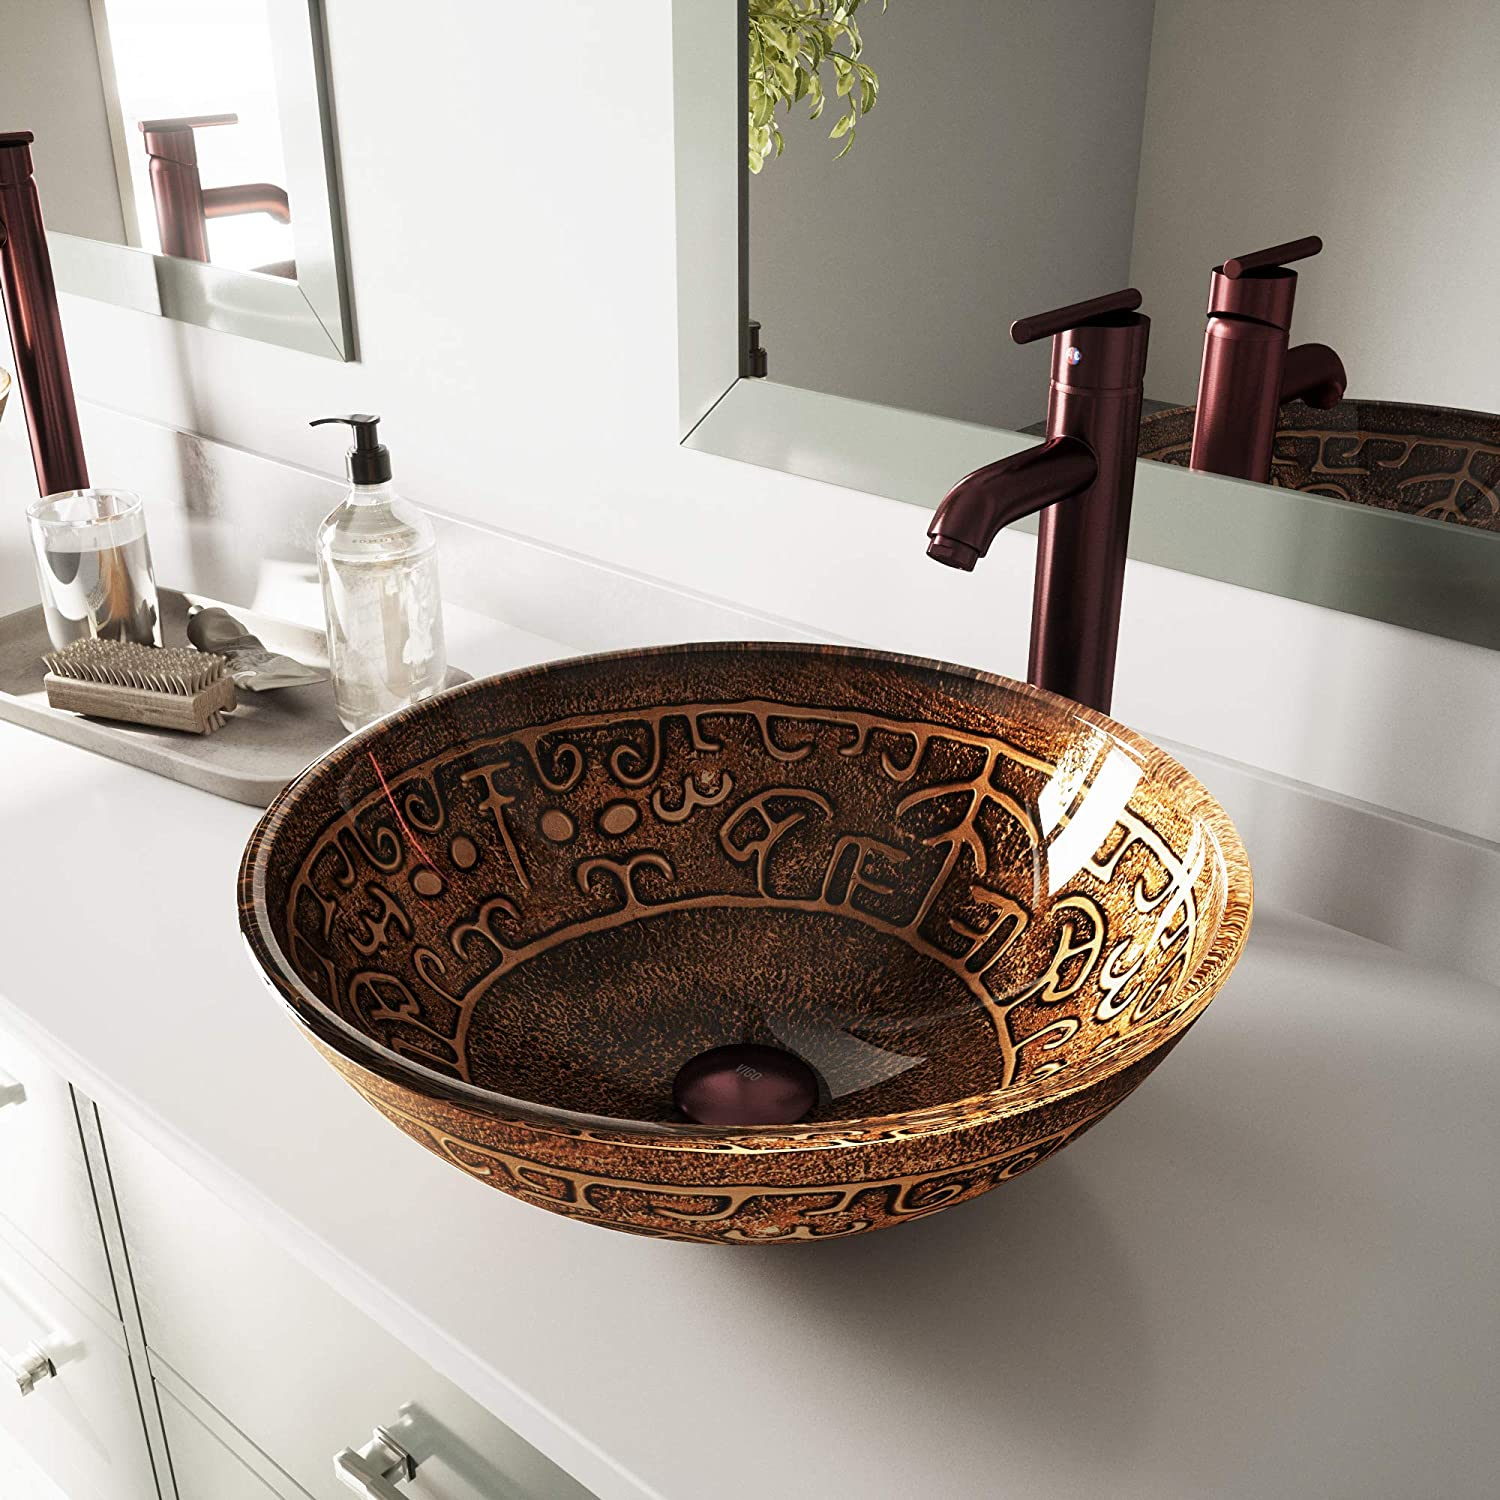 VIGO Golden Greek Glass Vessel Bathroom Sink and Seville Vessel Faucet with Pop Up, Oil Rubbed Bronze